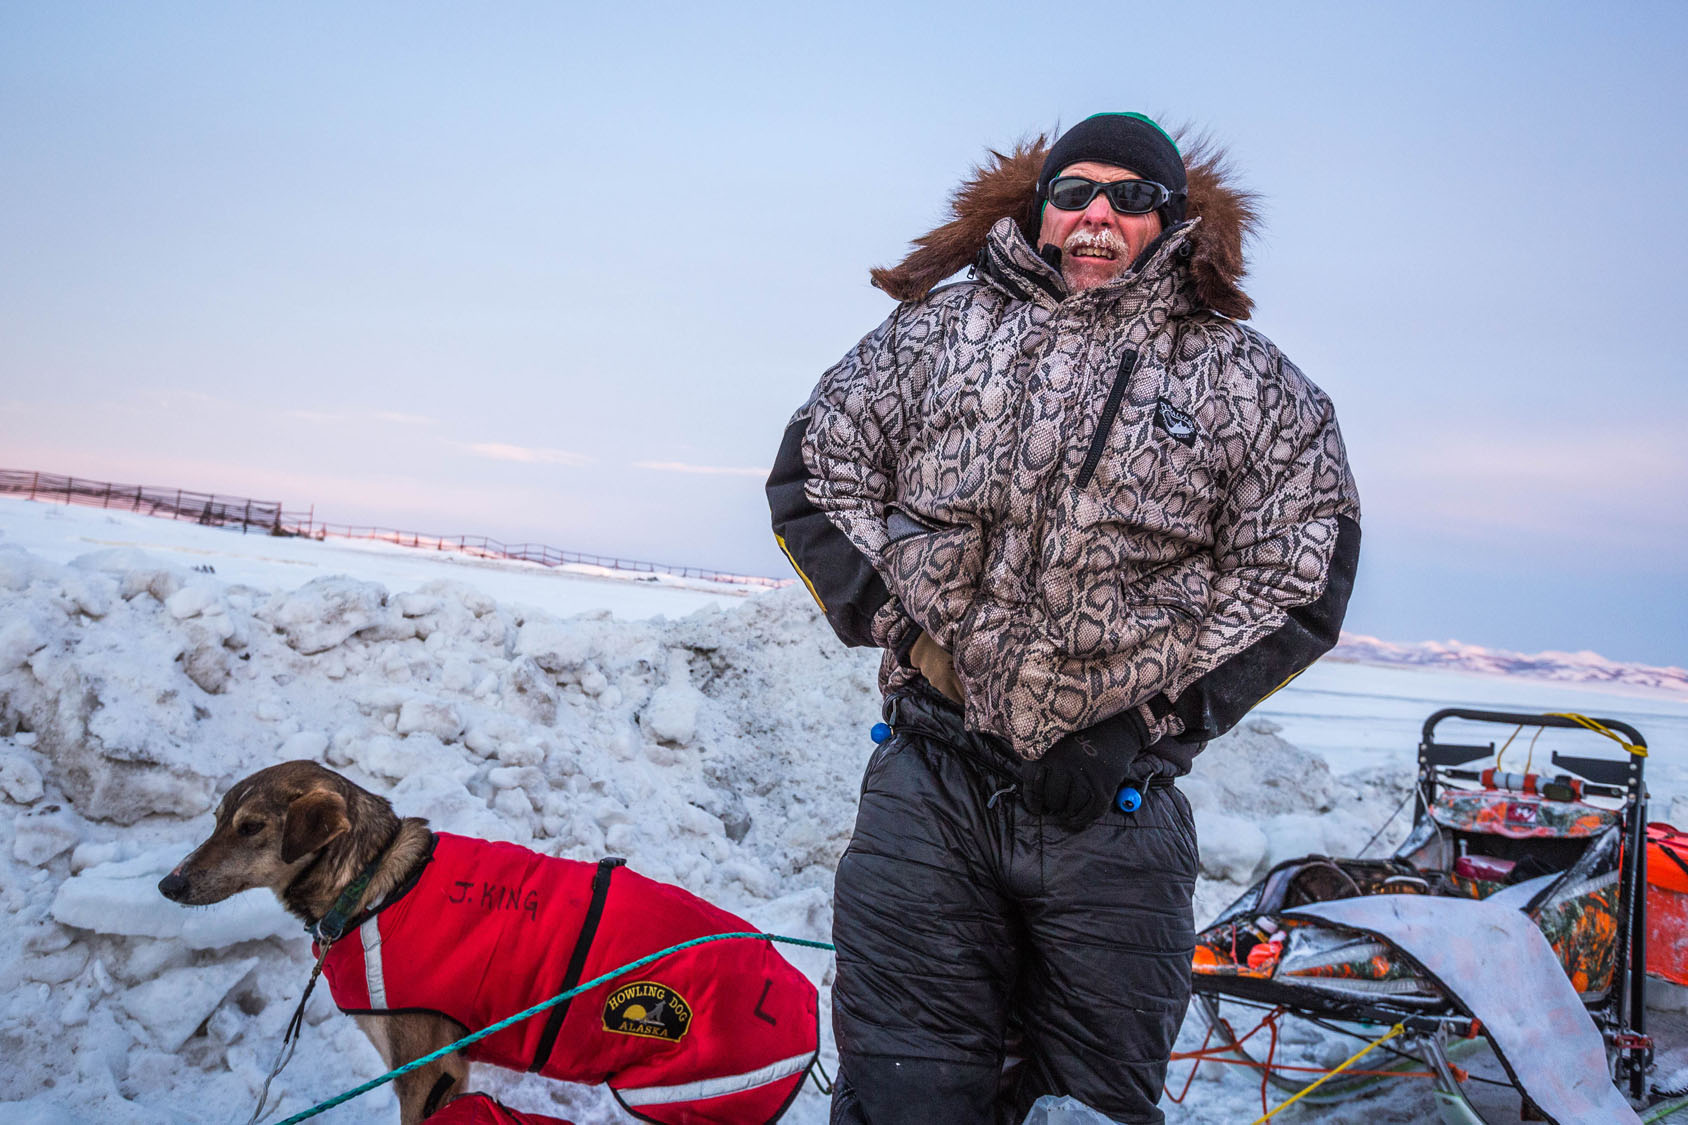 Scenes from the Iditarod